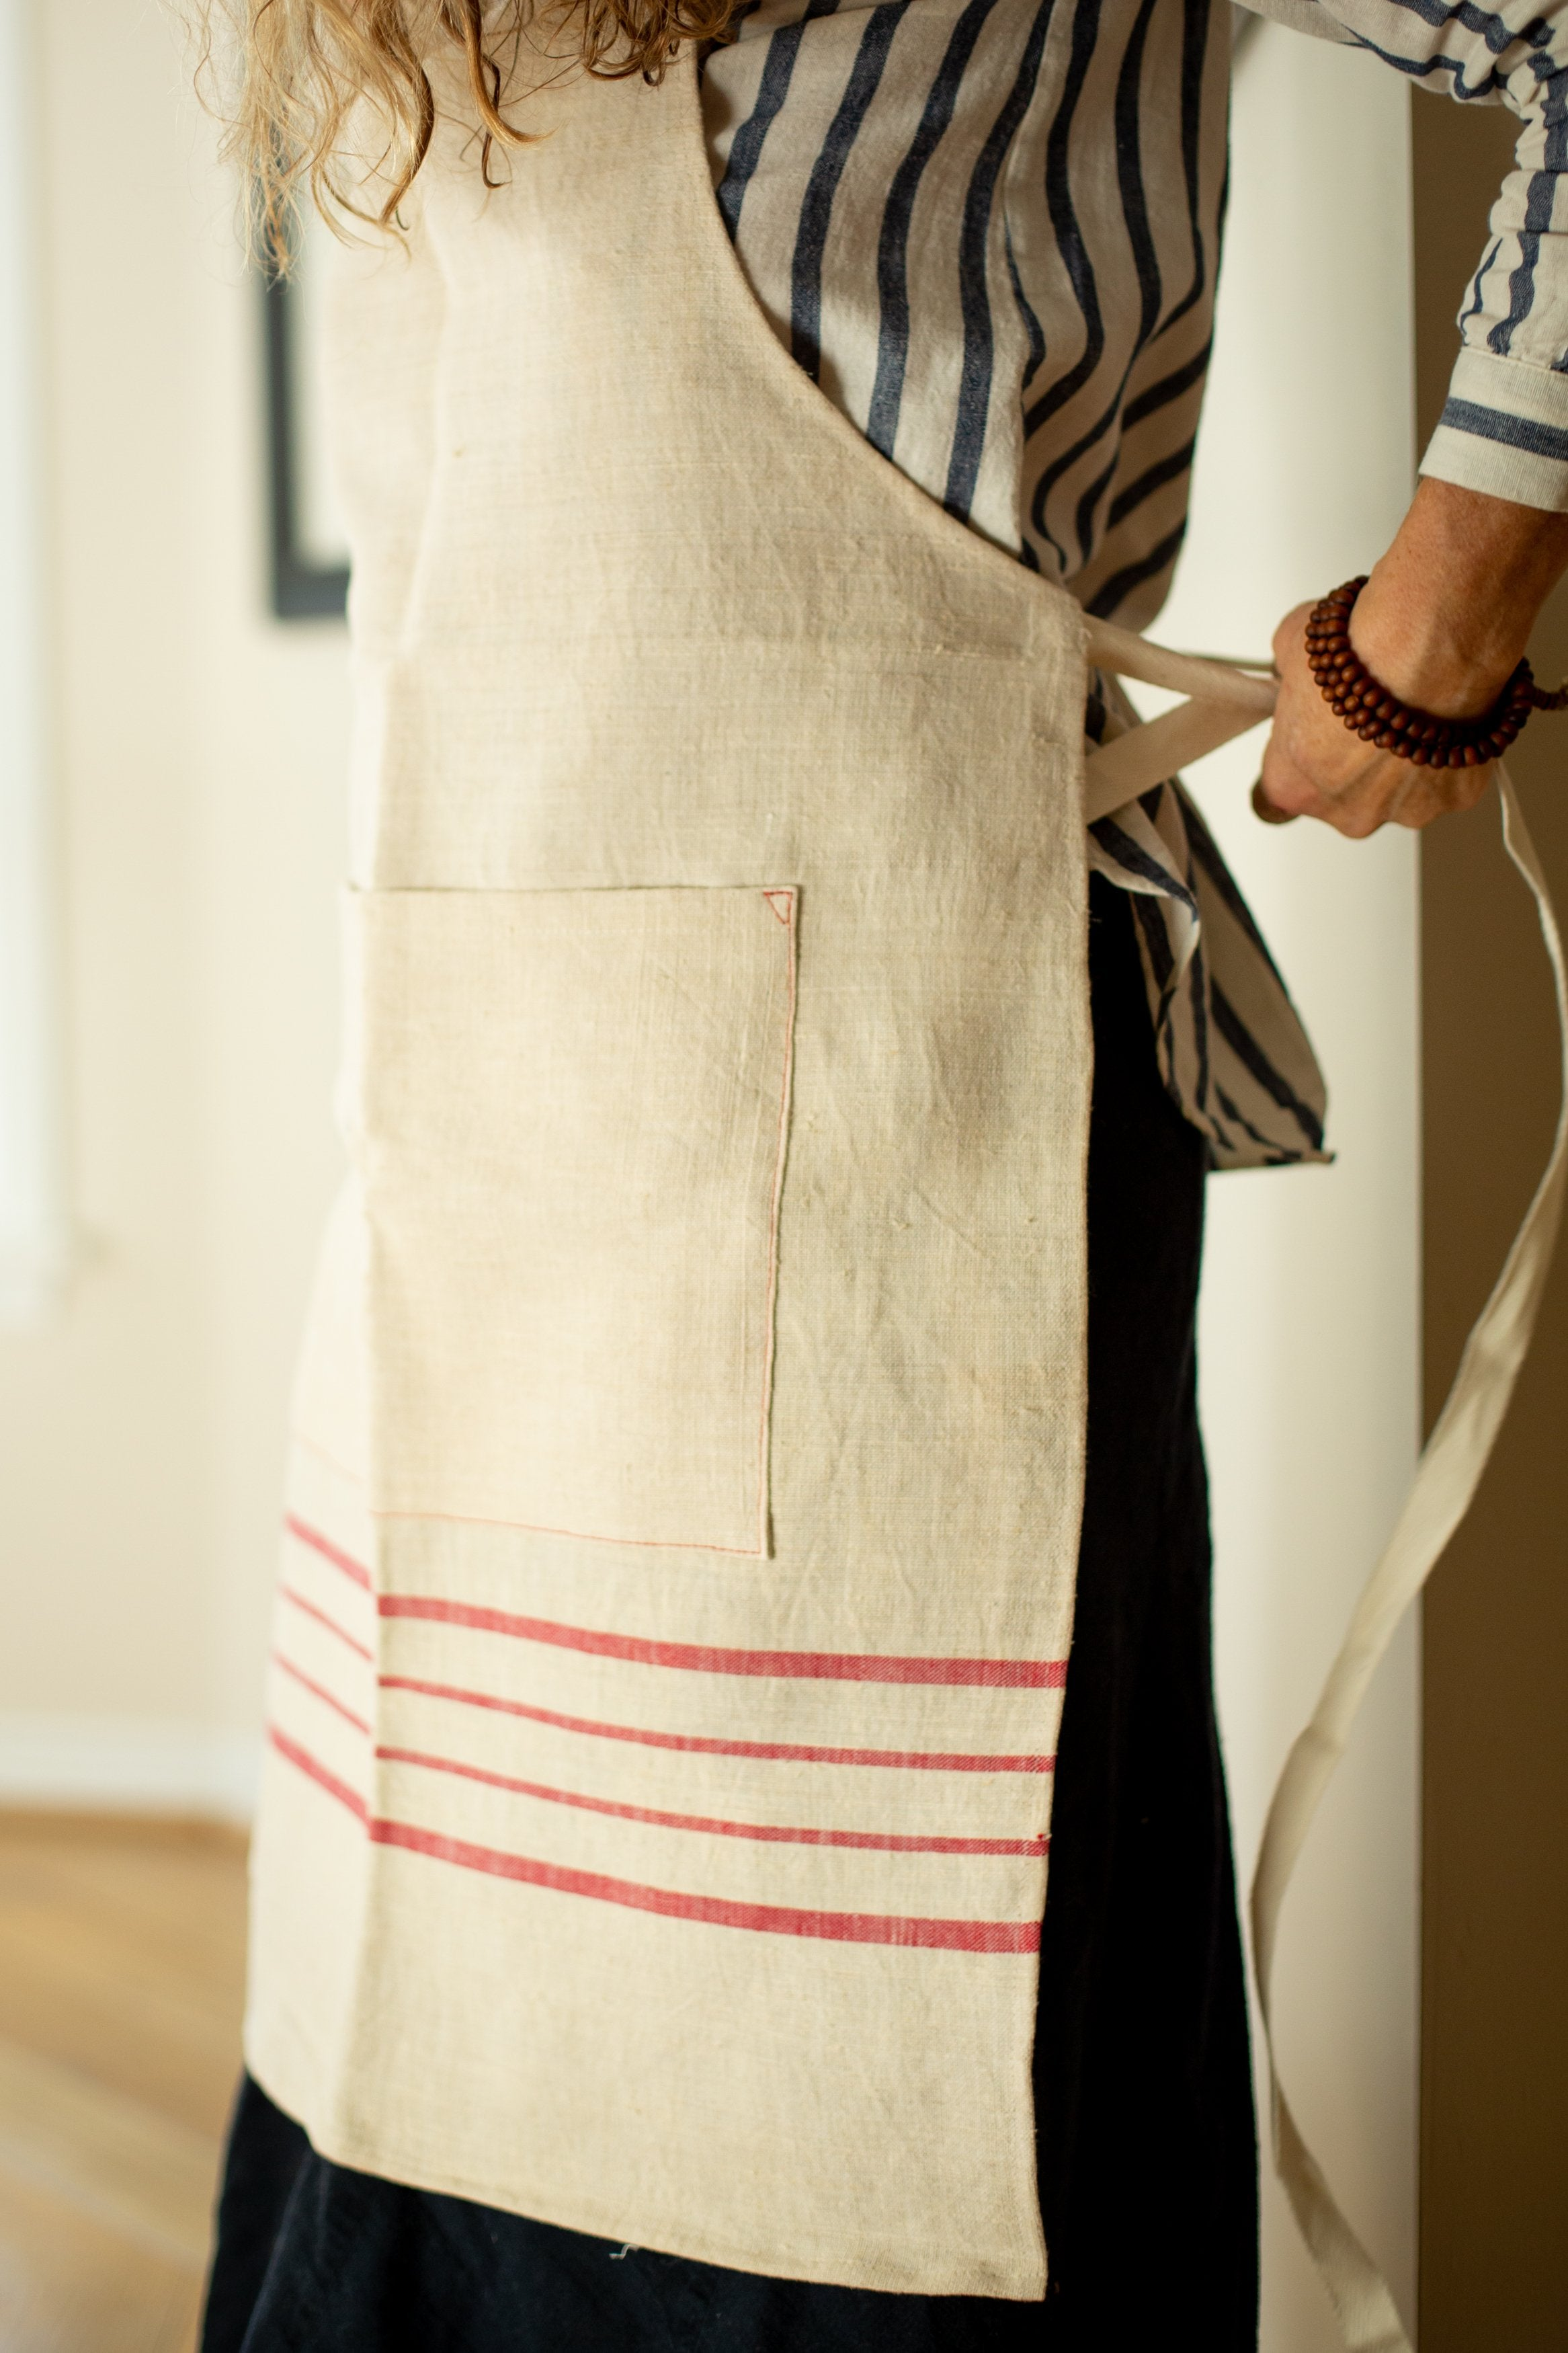 Apron: Full style, vintage handwoven Hungarian hemp - A26